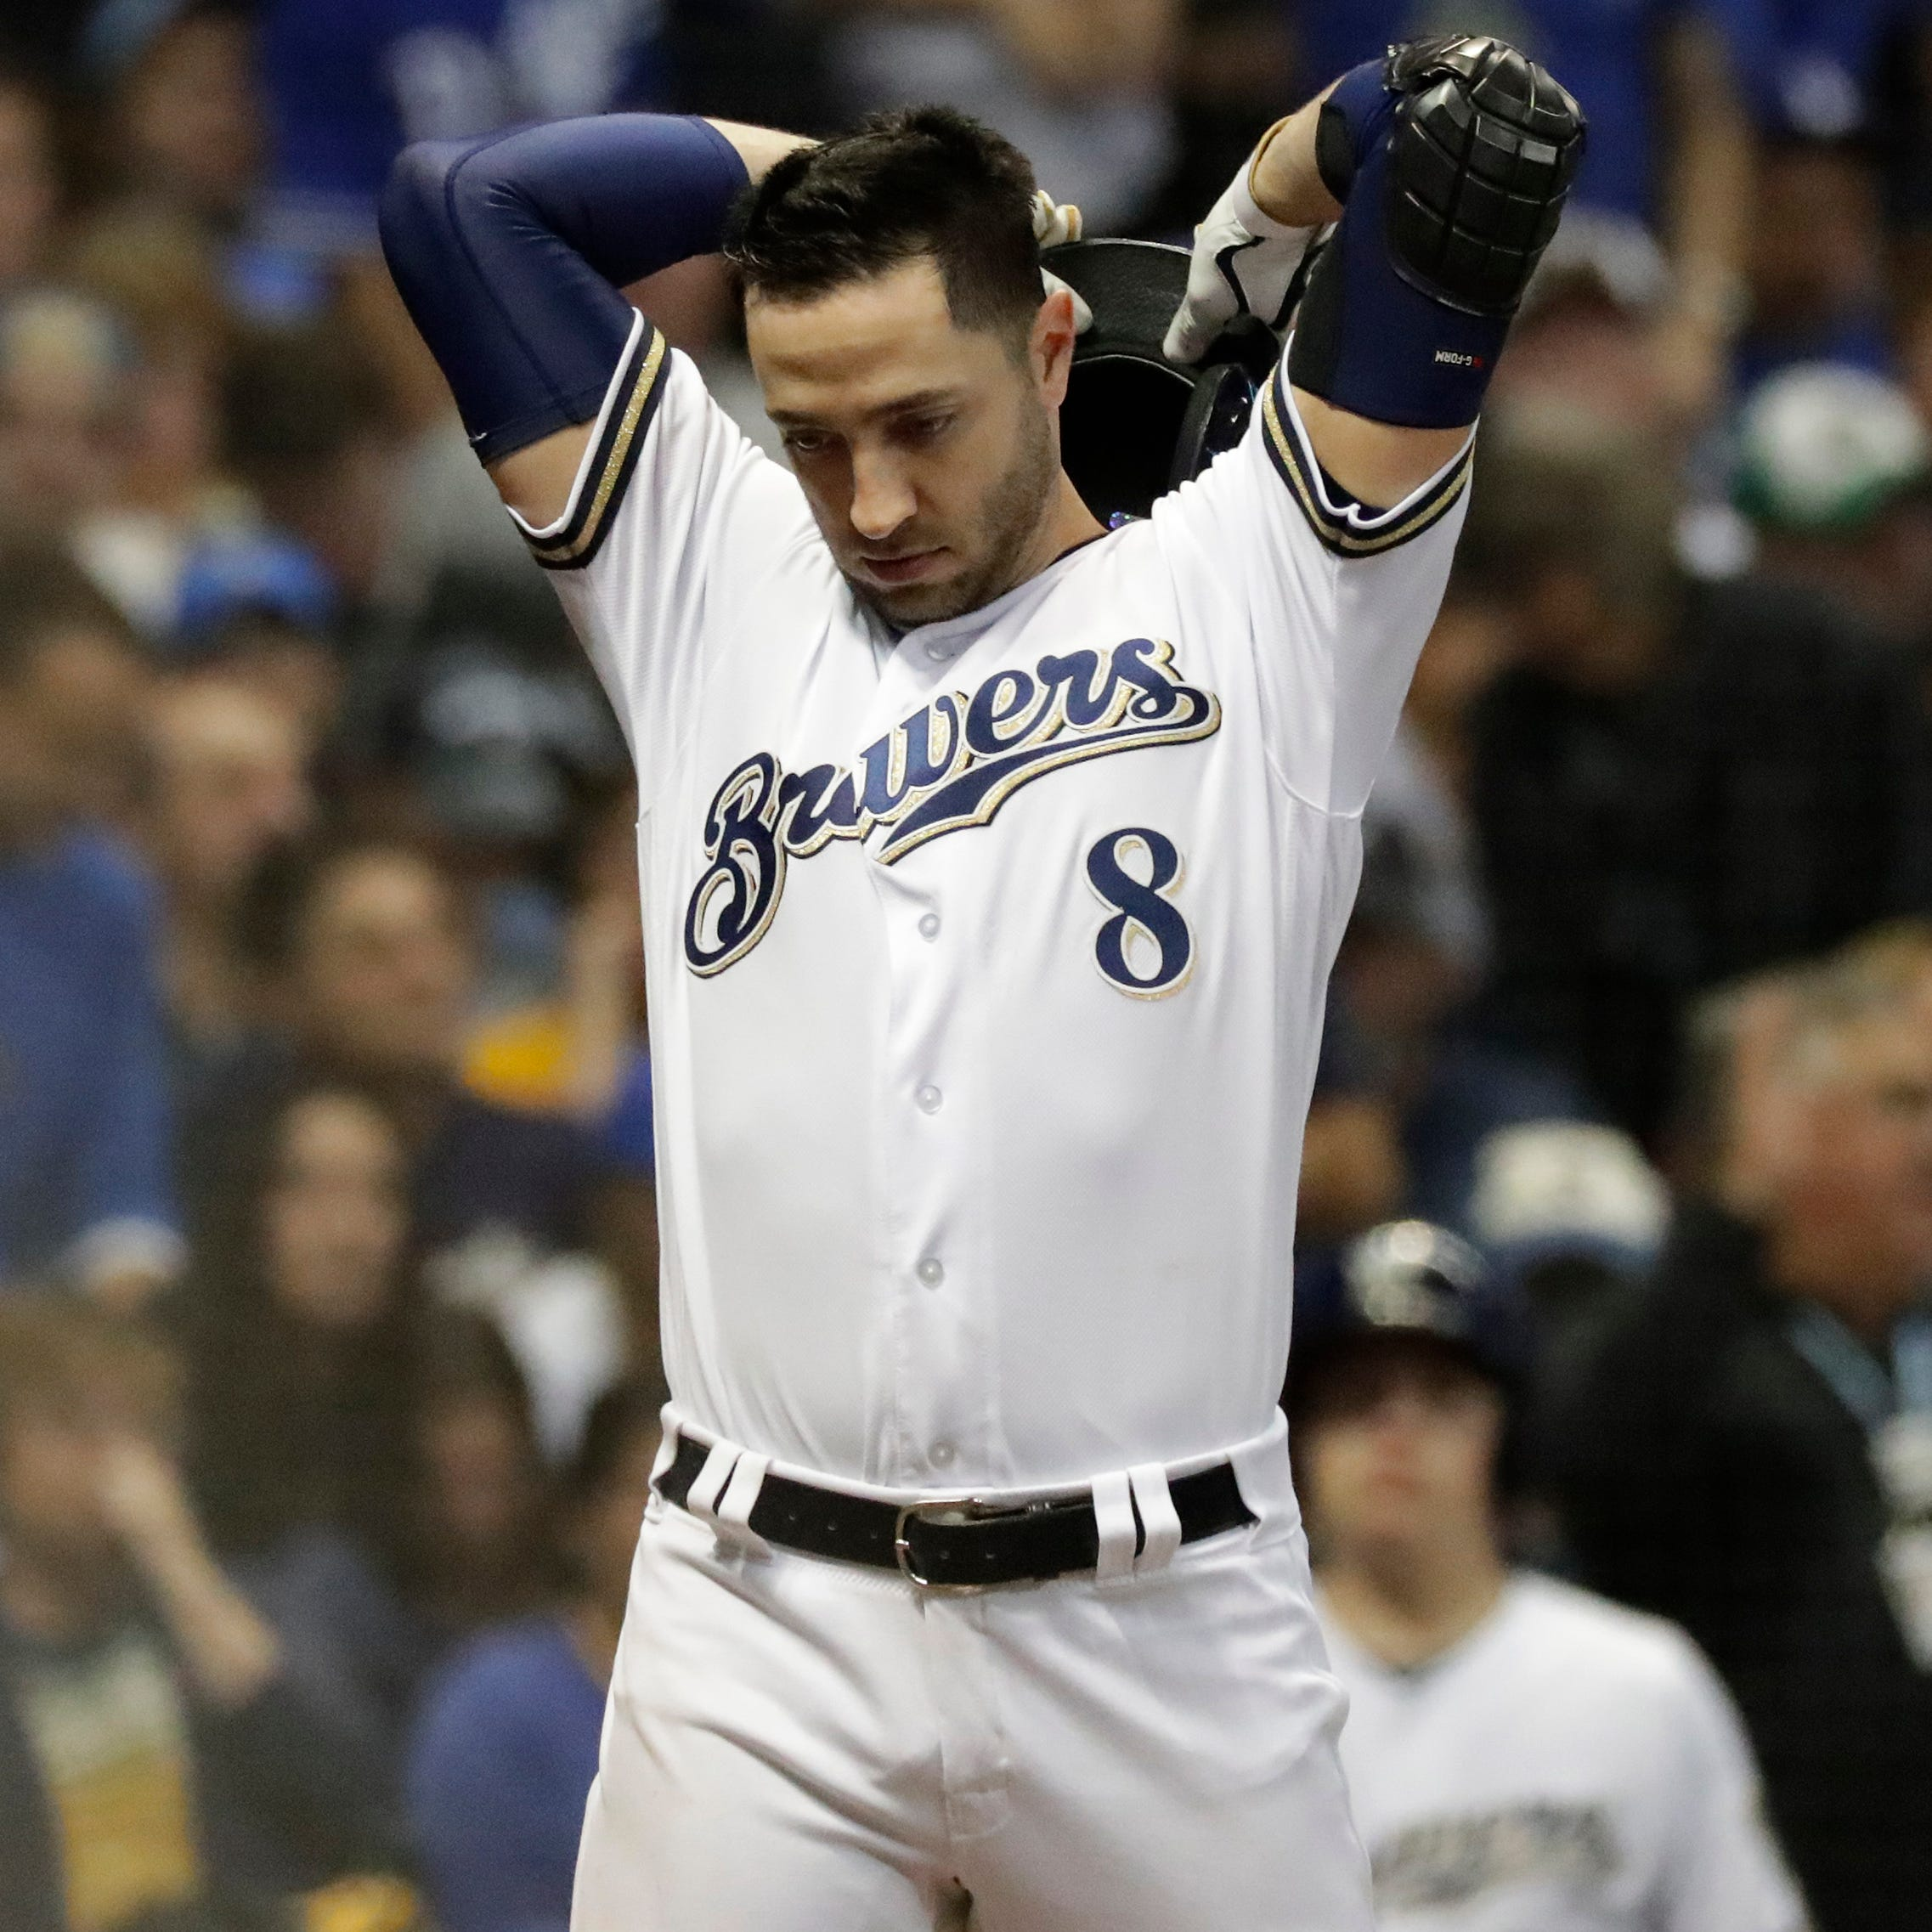 Though painful to fall one game short of World Series, Brewers anticipate future success